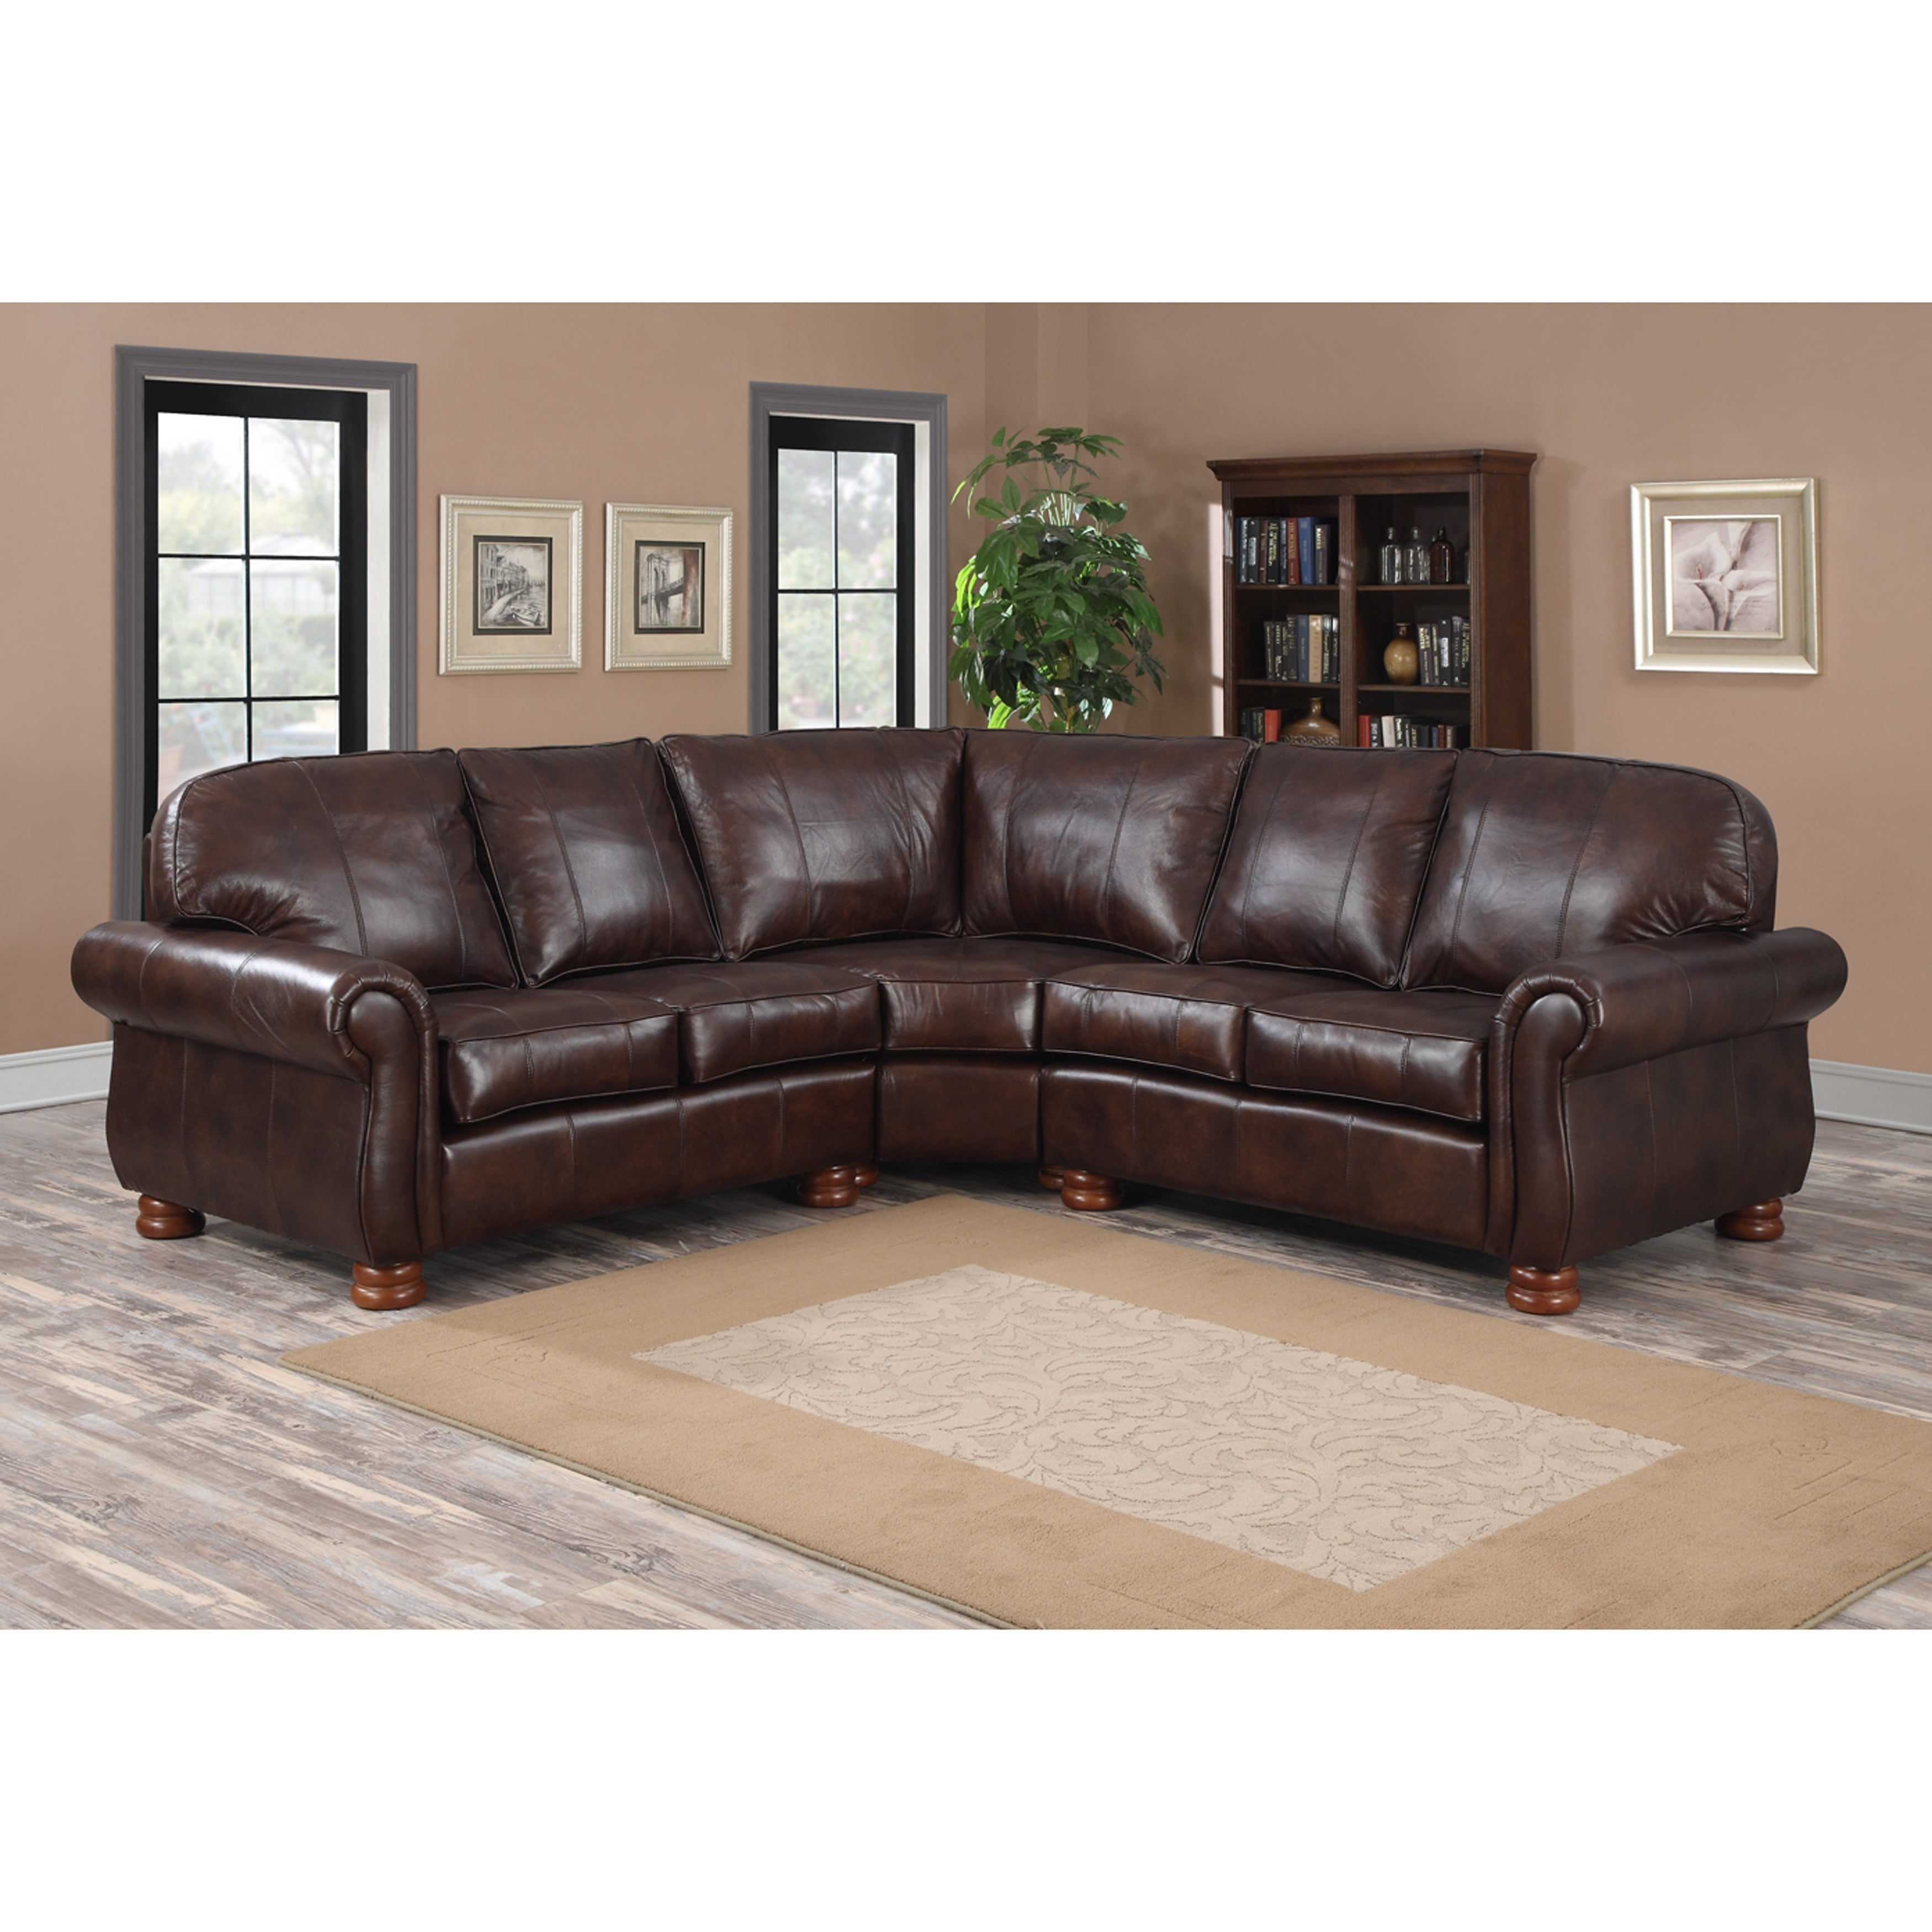 Melrose Dark Brown Italian Leather Three-piece Sectional Sofa